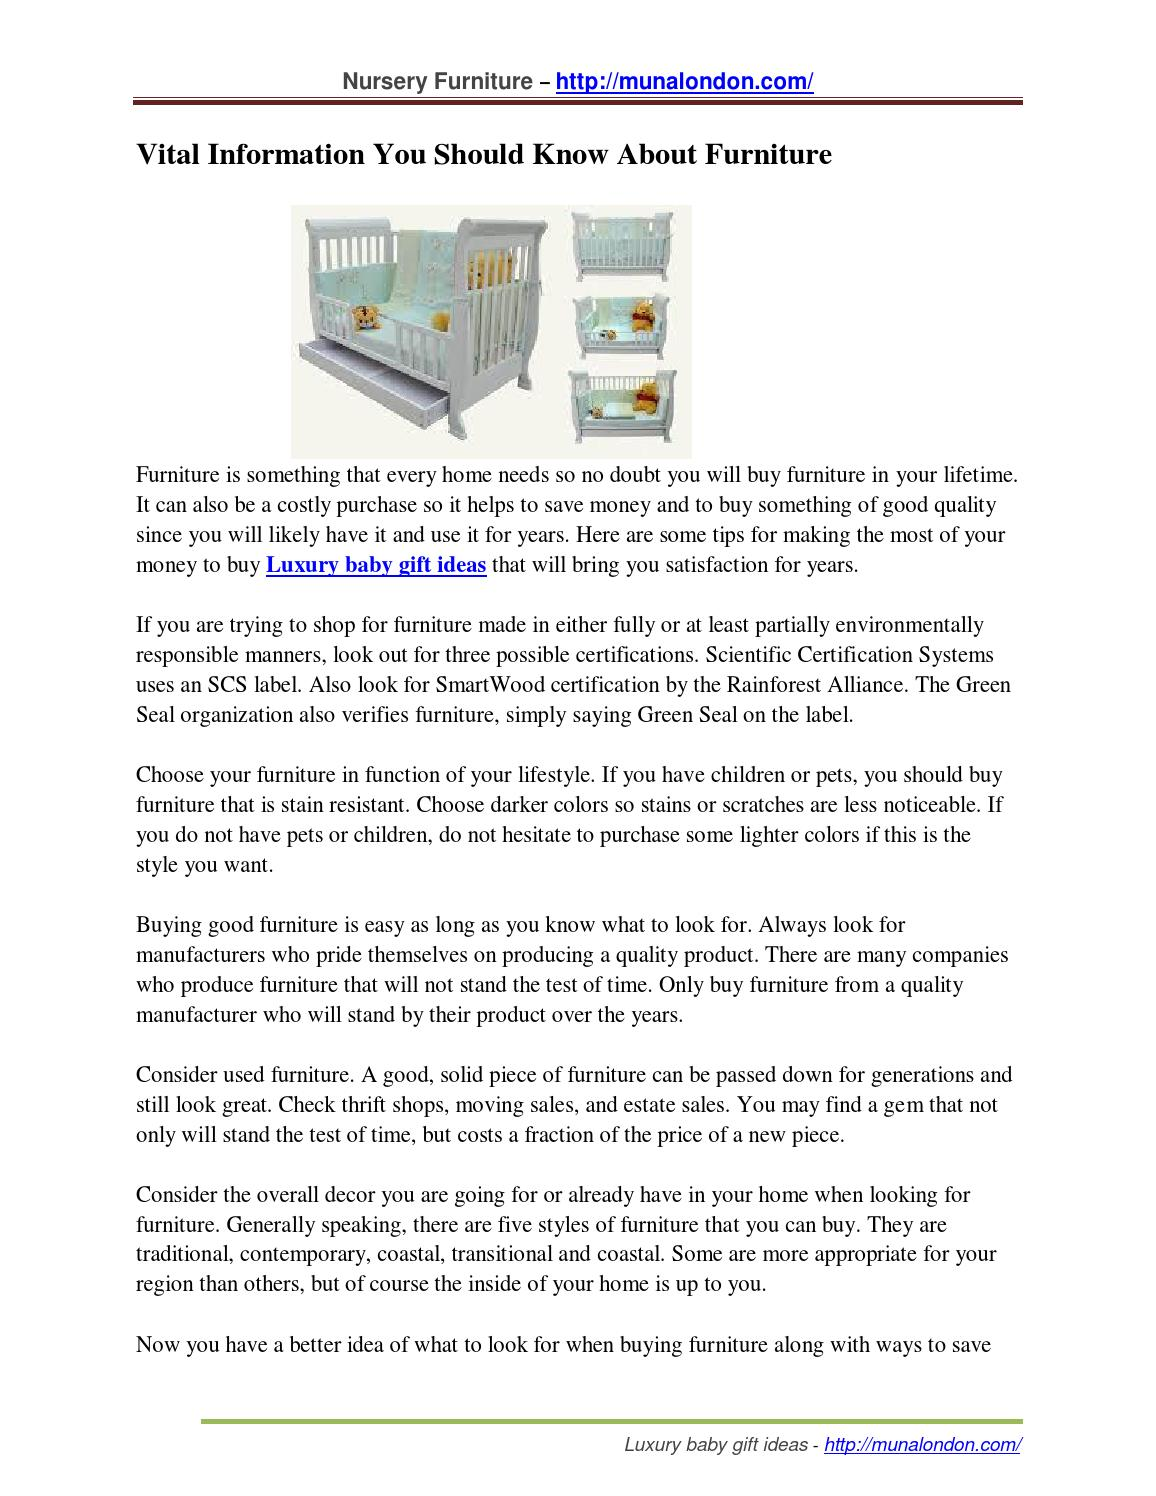 Vital Information You Should Know About Furniture By Omarbratton Issuu